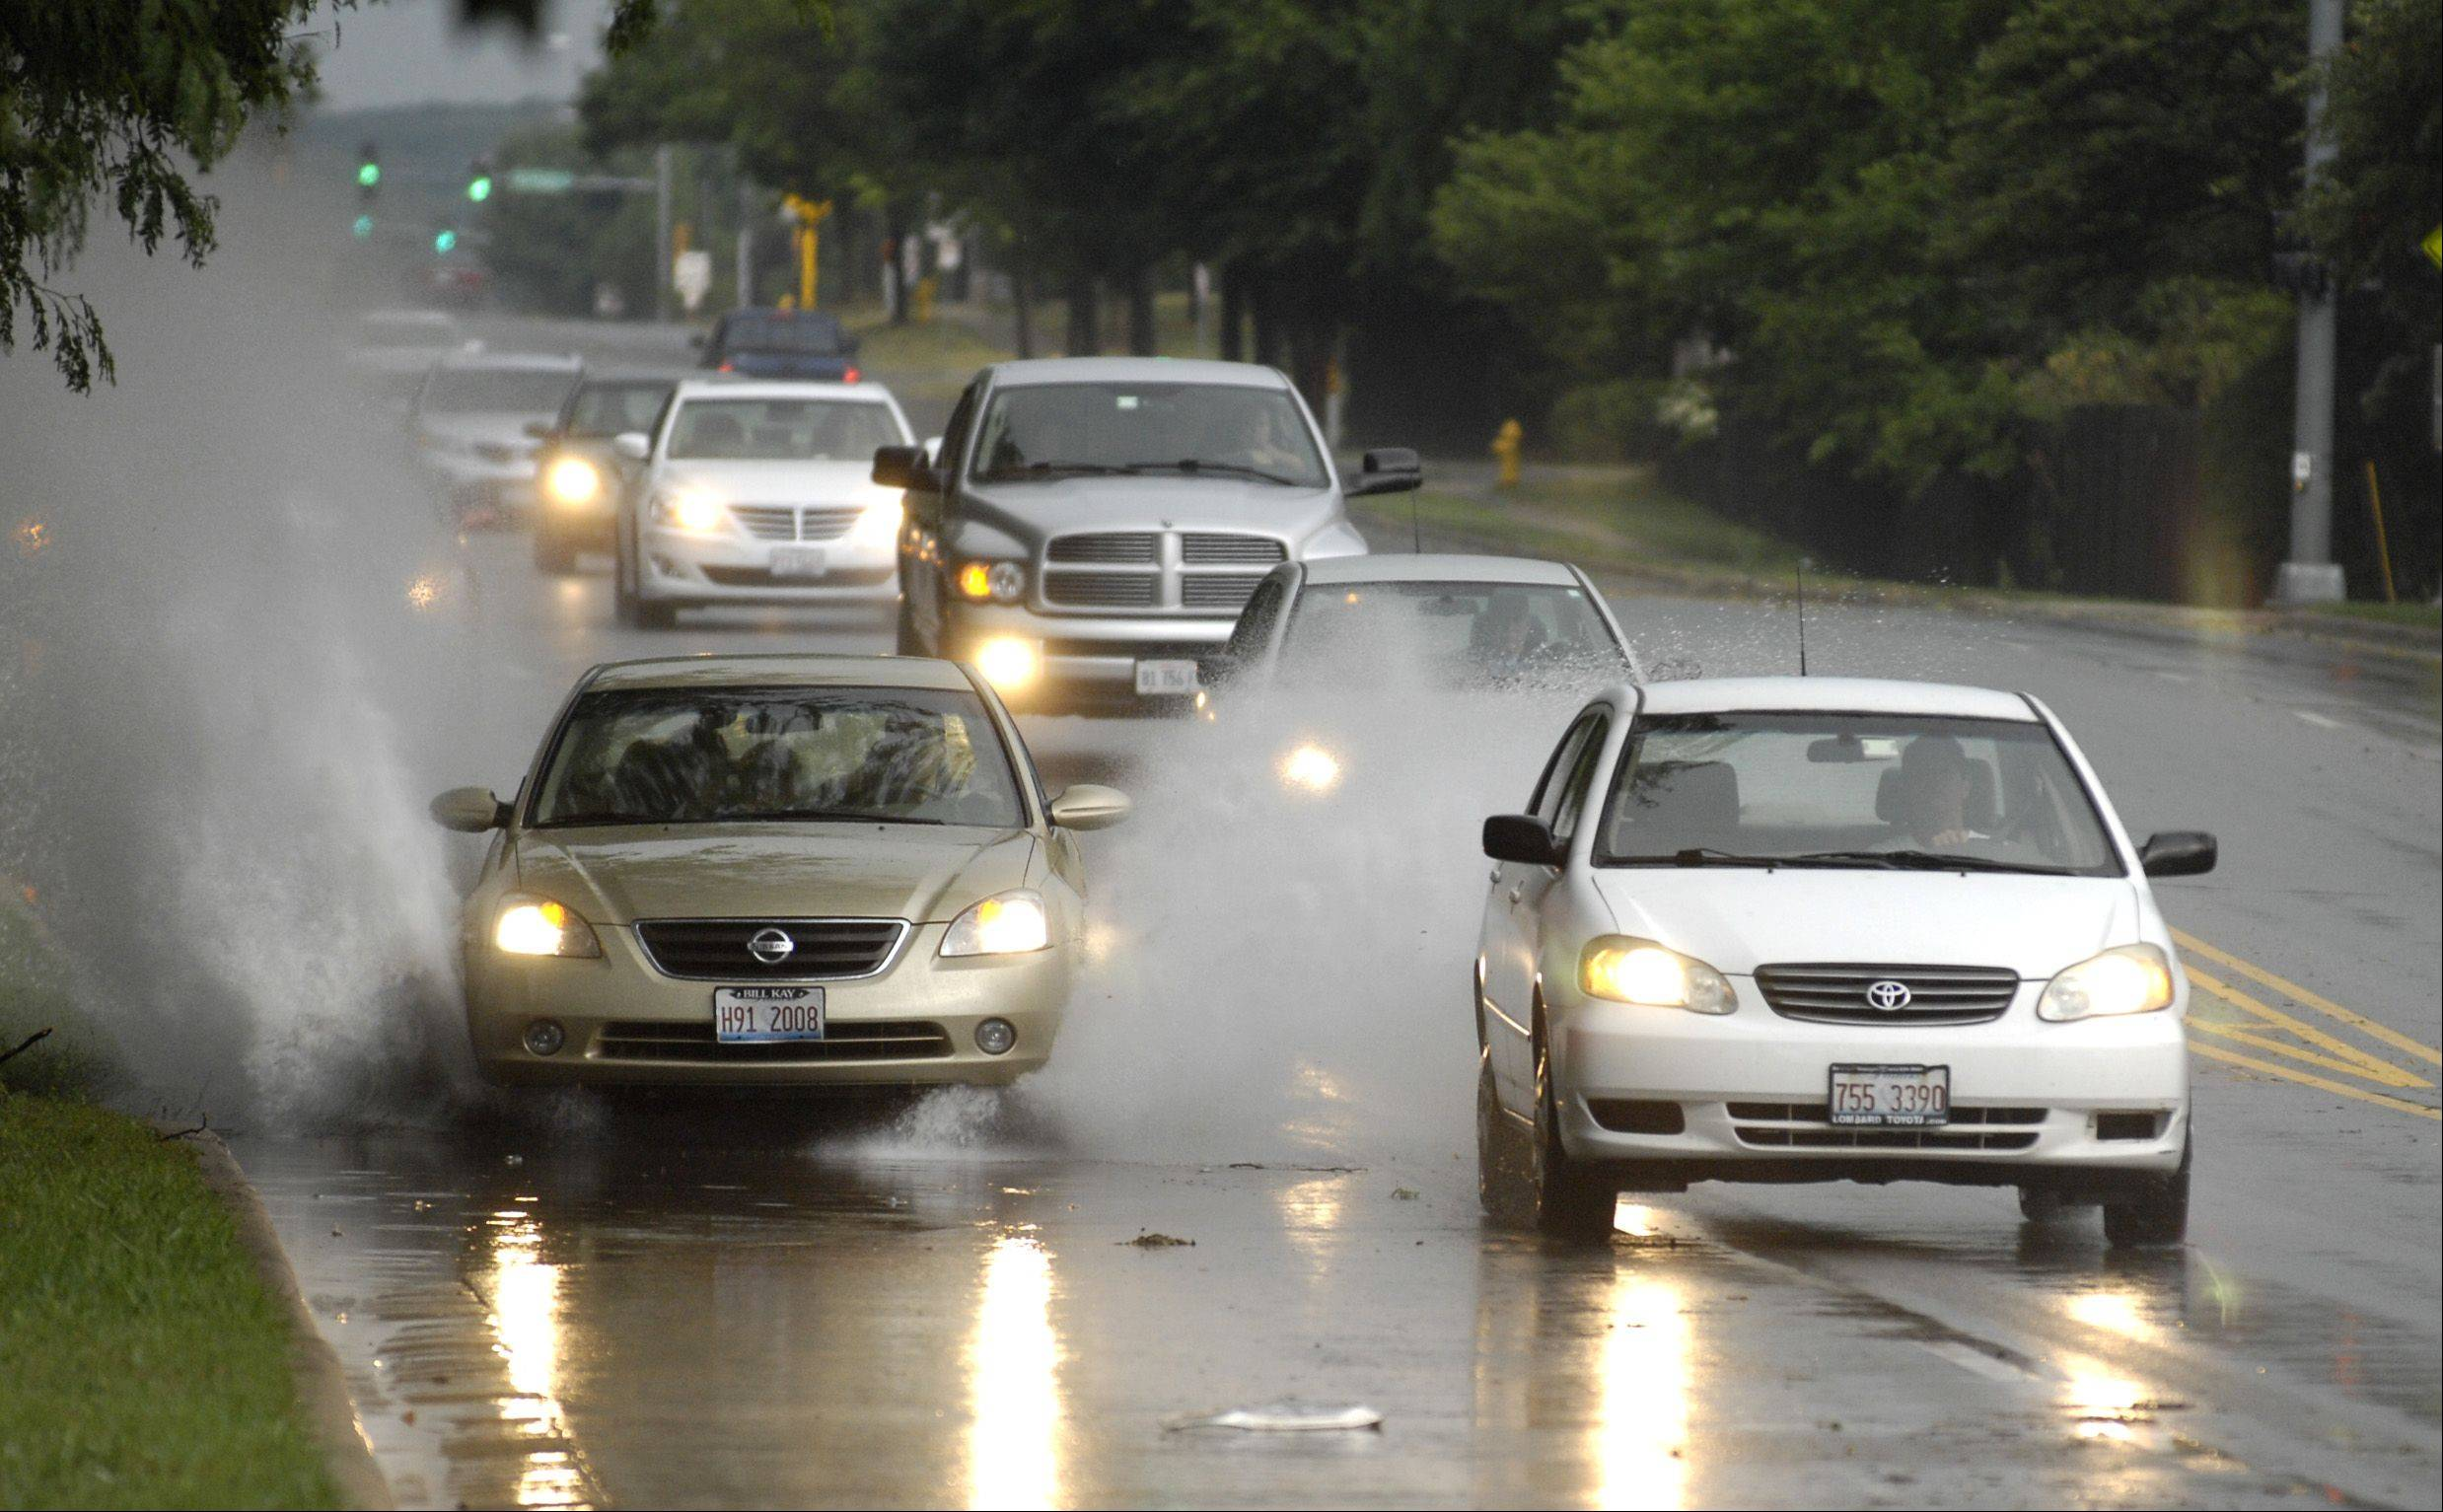 Cars drive through some water along Naperville Road in Wheaton after an afternoon storm rolled through DuPage County, Sunday.